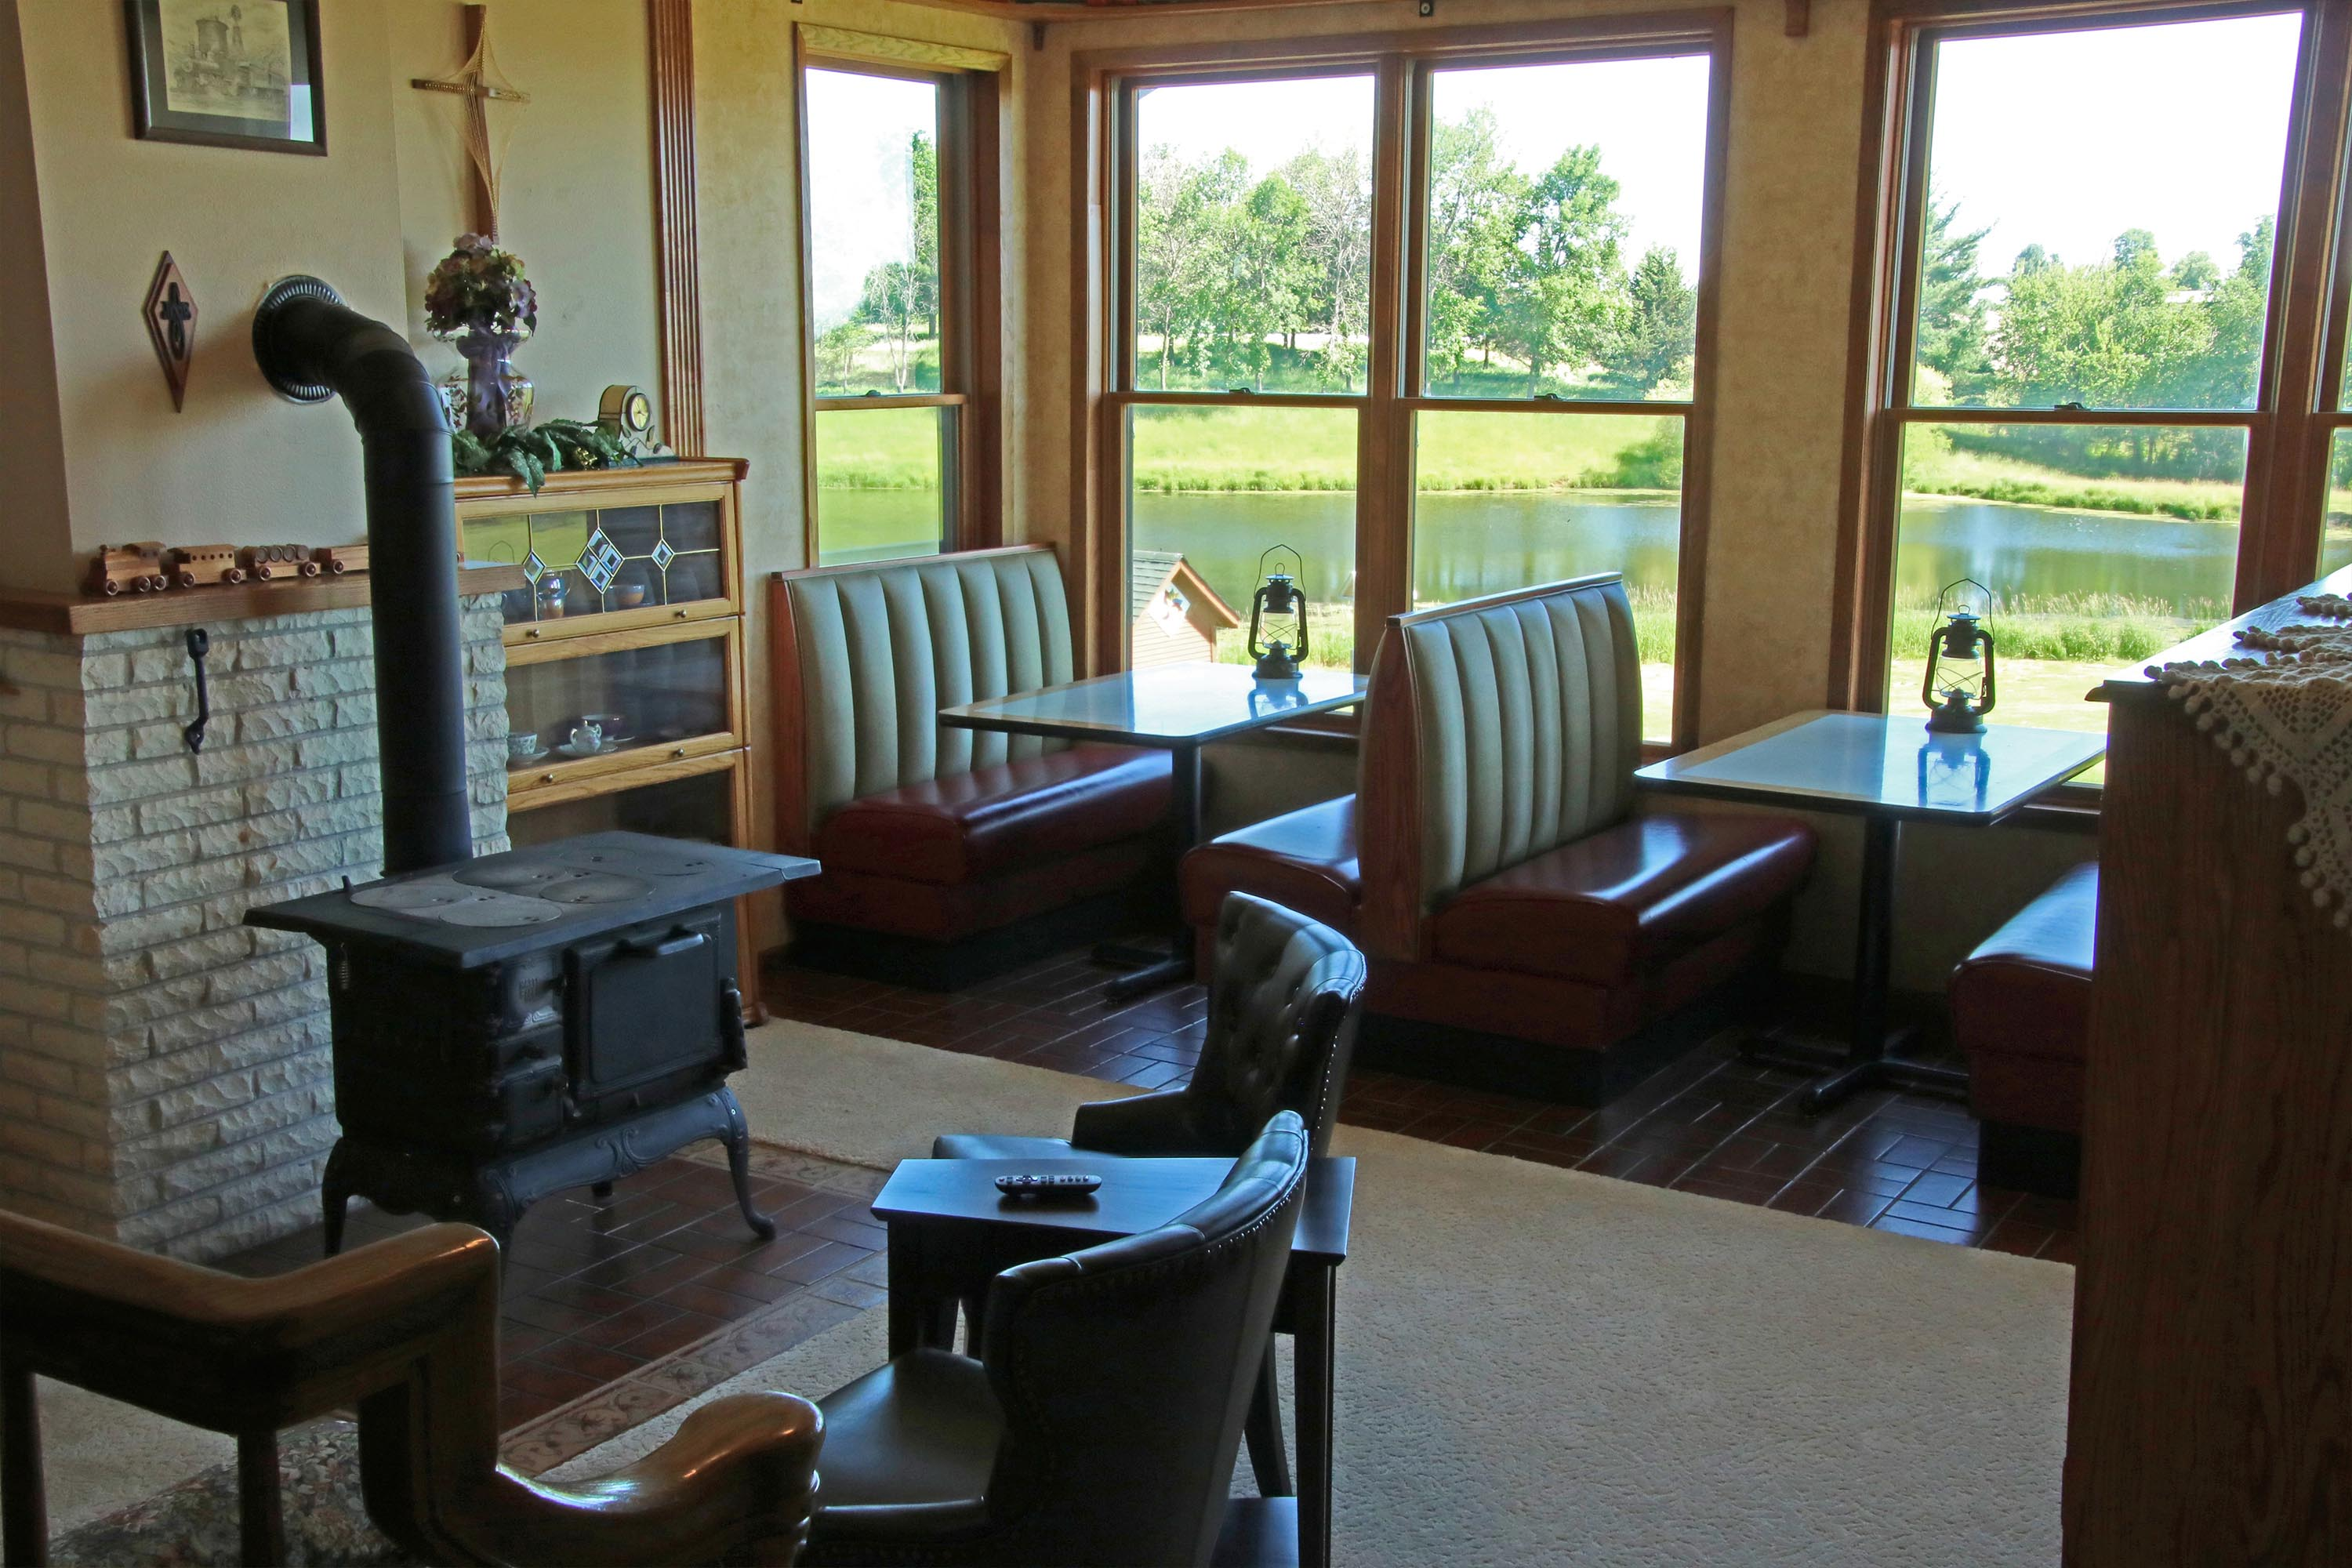 Foreside Acres Common Area